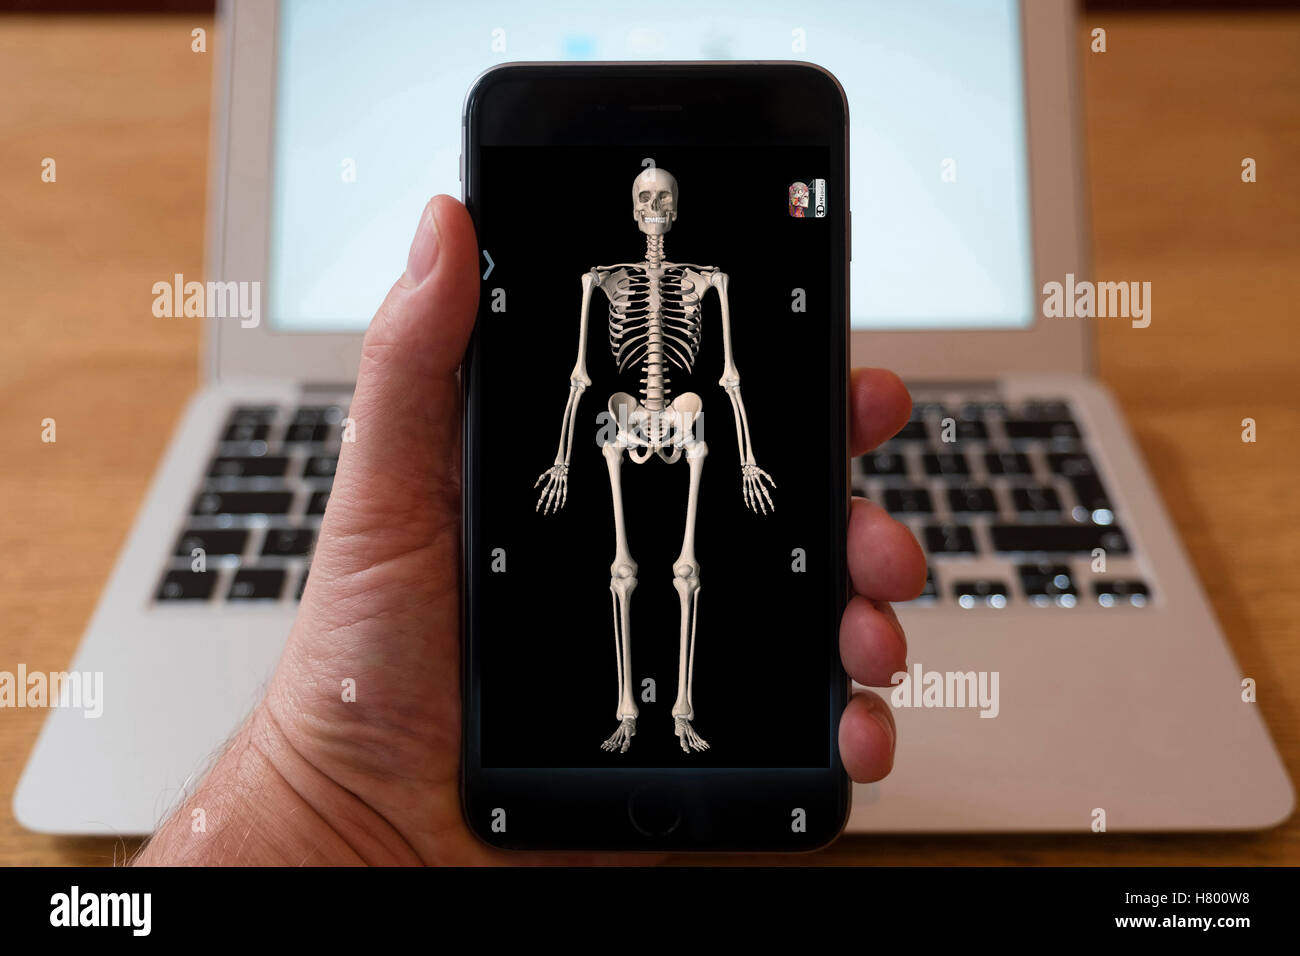 Using iPhone smartphone to display 3D image of human skeleton from anatomy medical education app - Stock Image